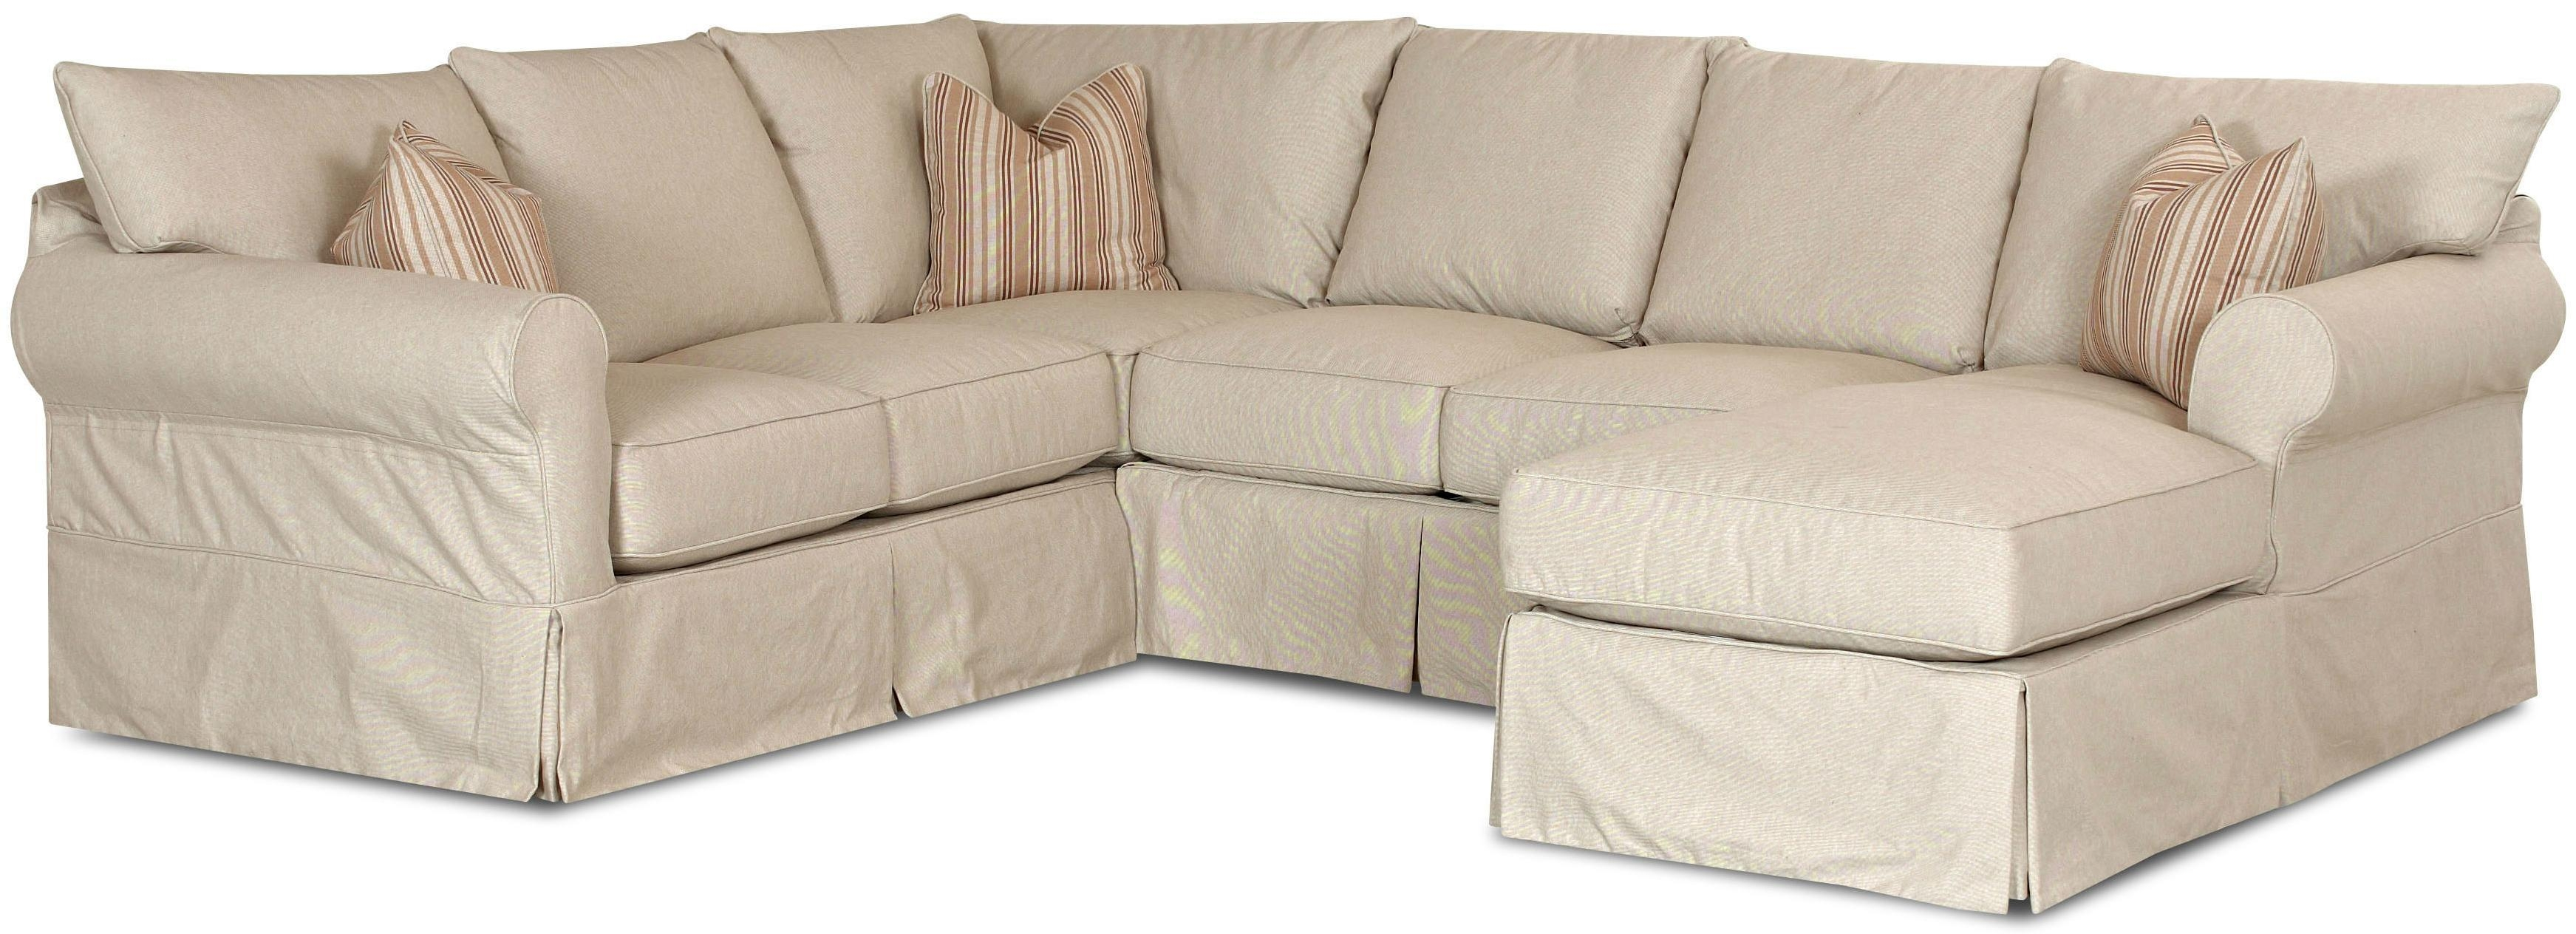 Furniture: Update Your Cozy Living Room With Cheap Sofa Covers Within 3 Piece Sofa Slipcovers (Image 7 of 20)